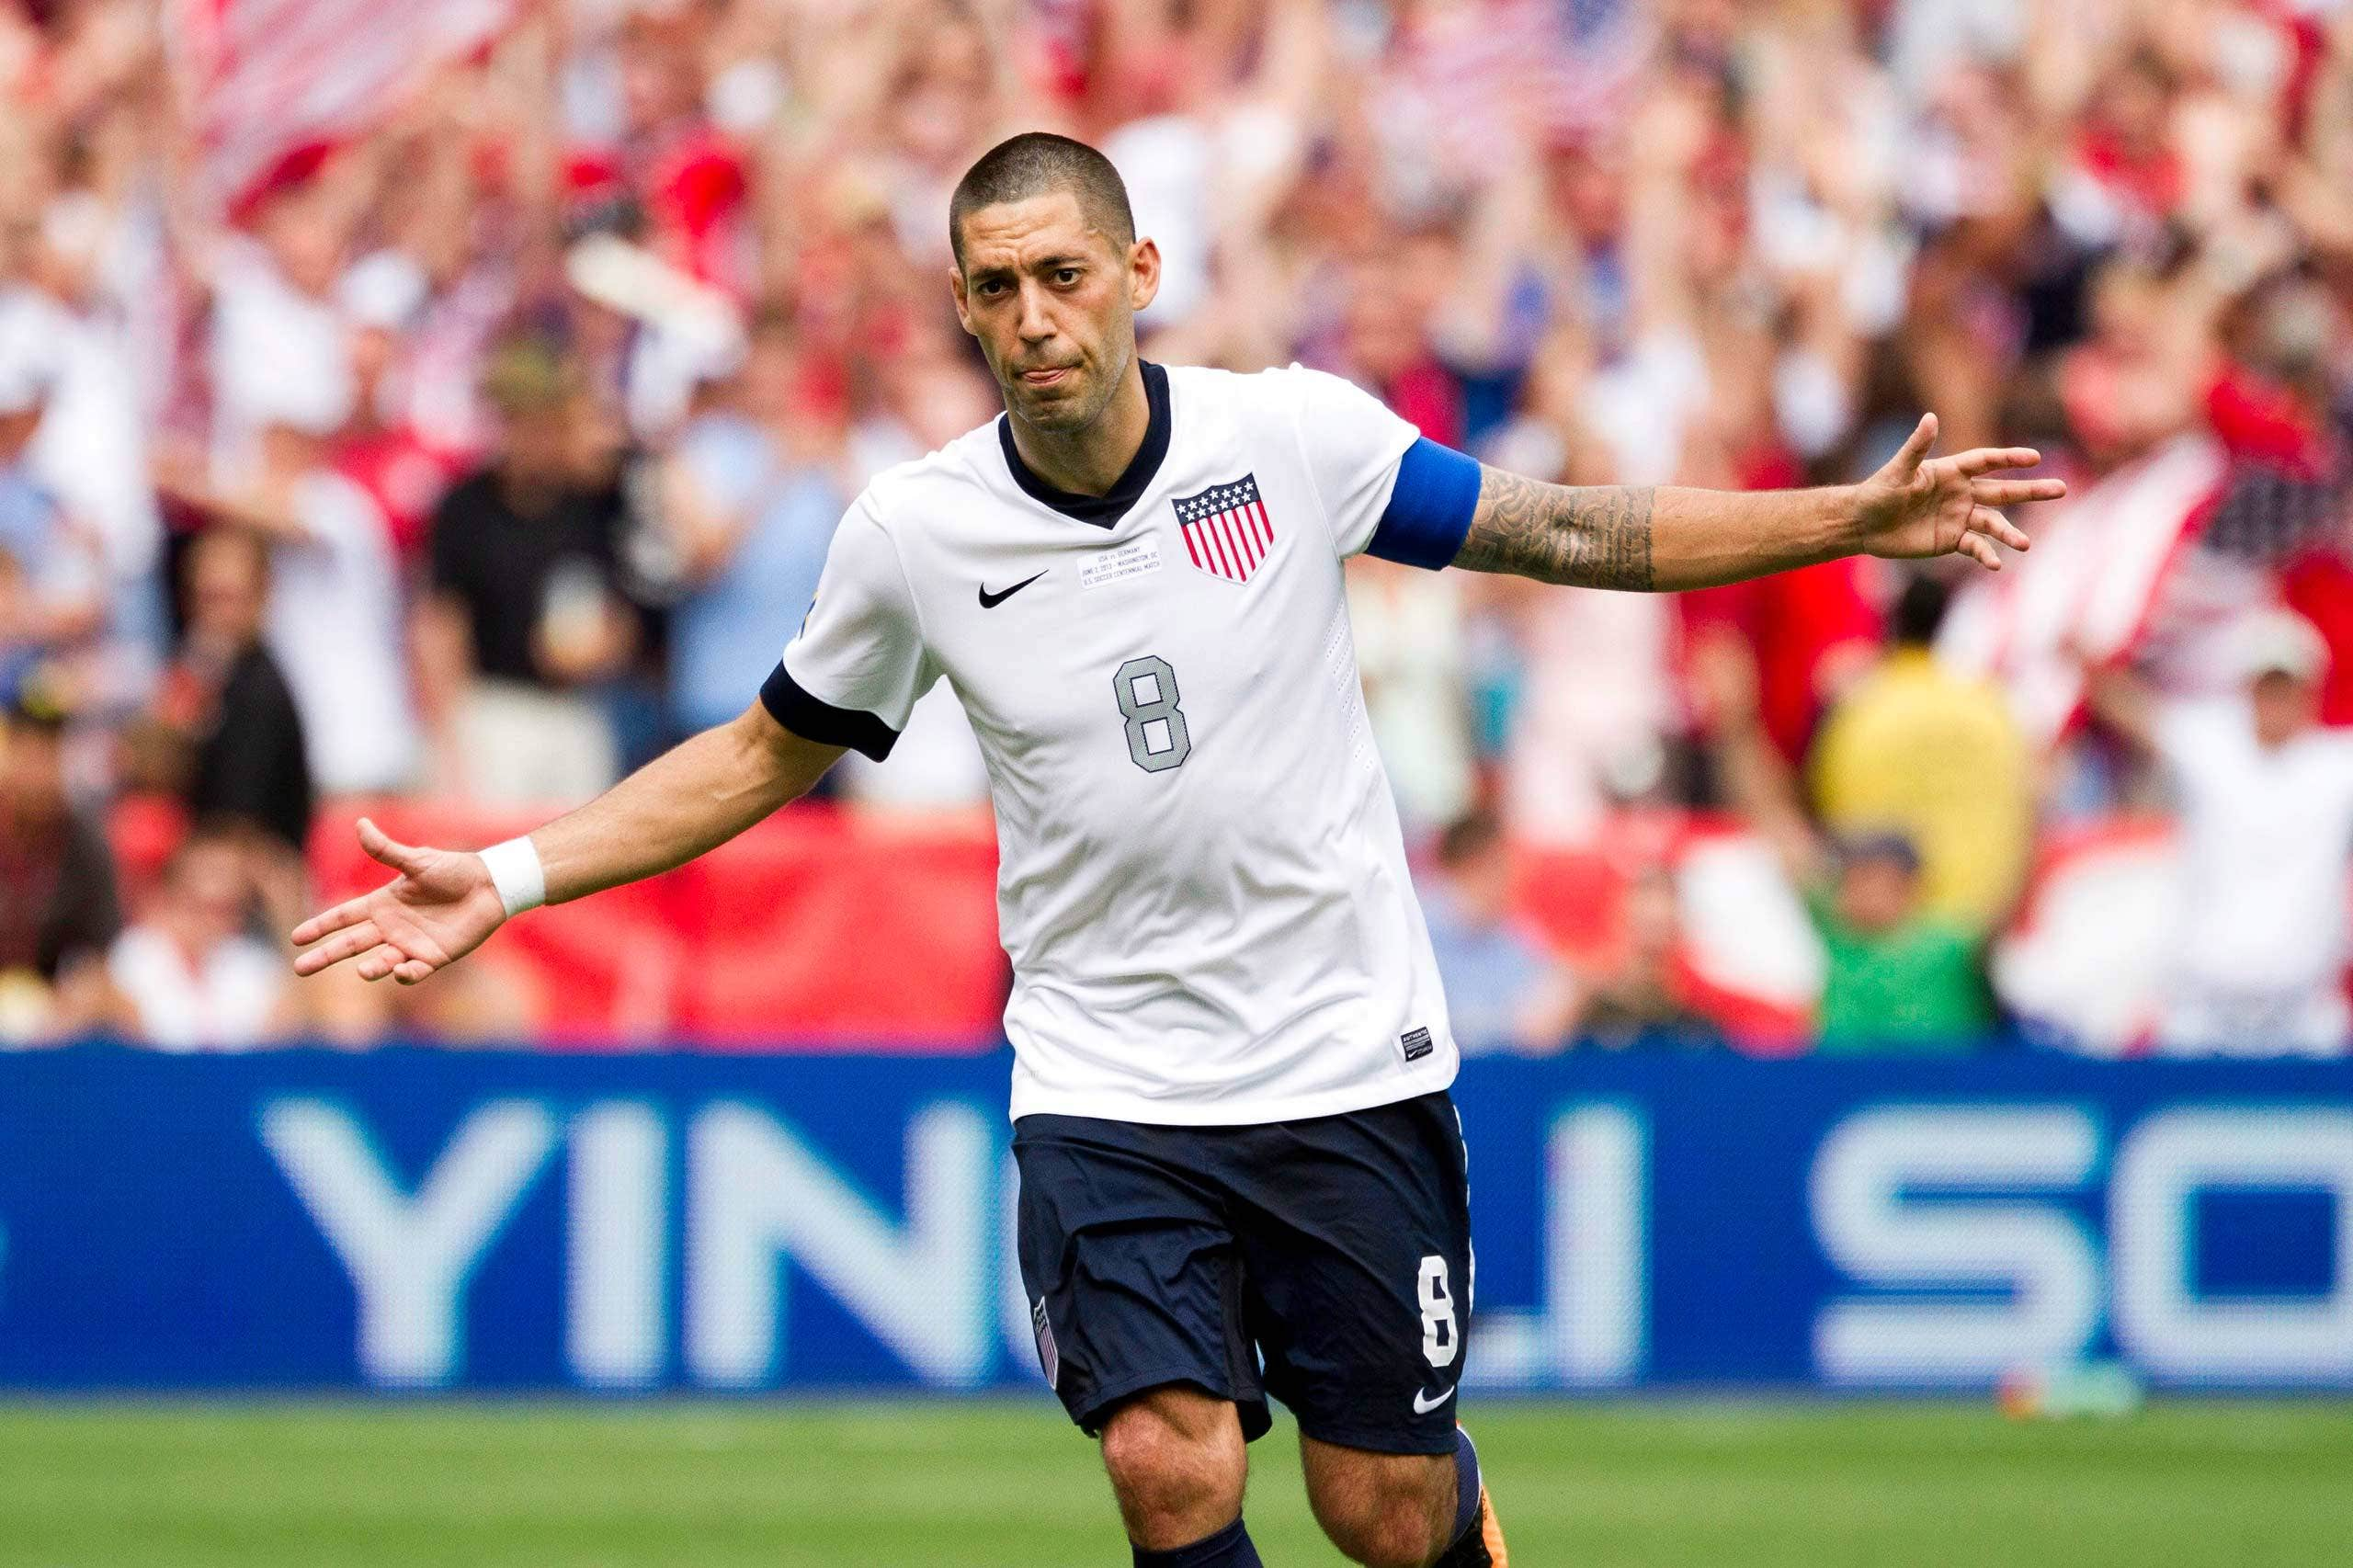 promo code cd301 2d3ec The 5 best and 5 worst U.S. Soccer kits of all time   FOX Sports